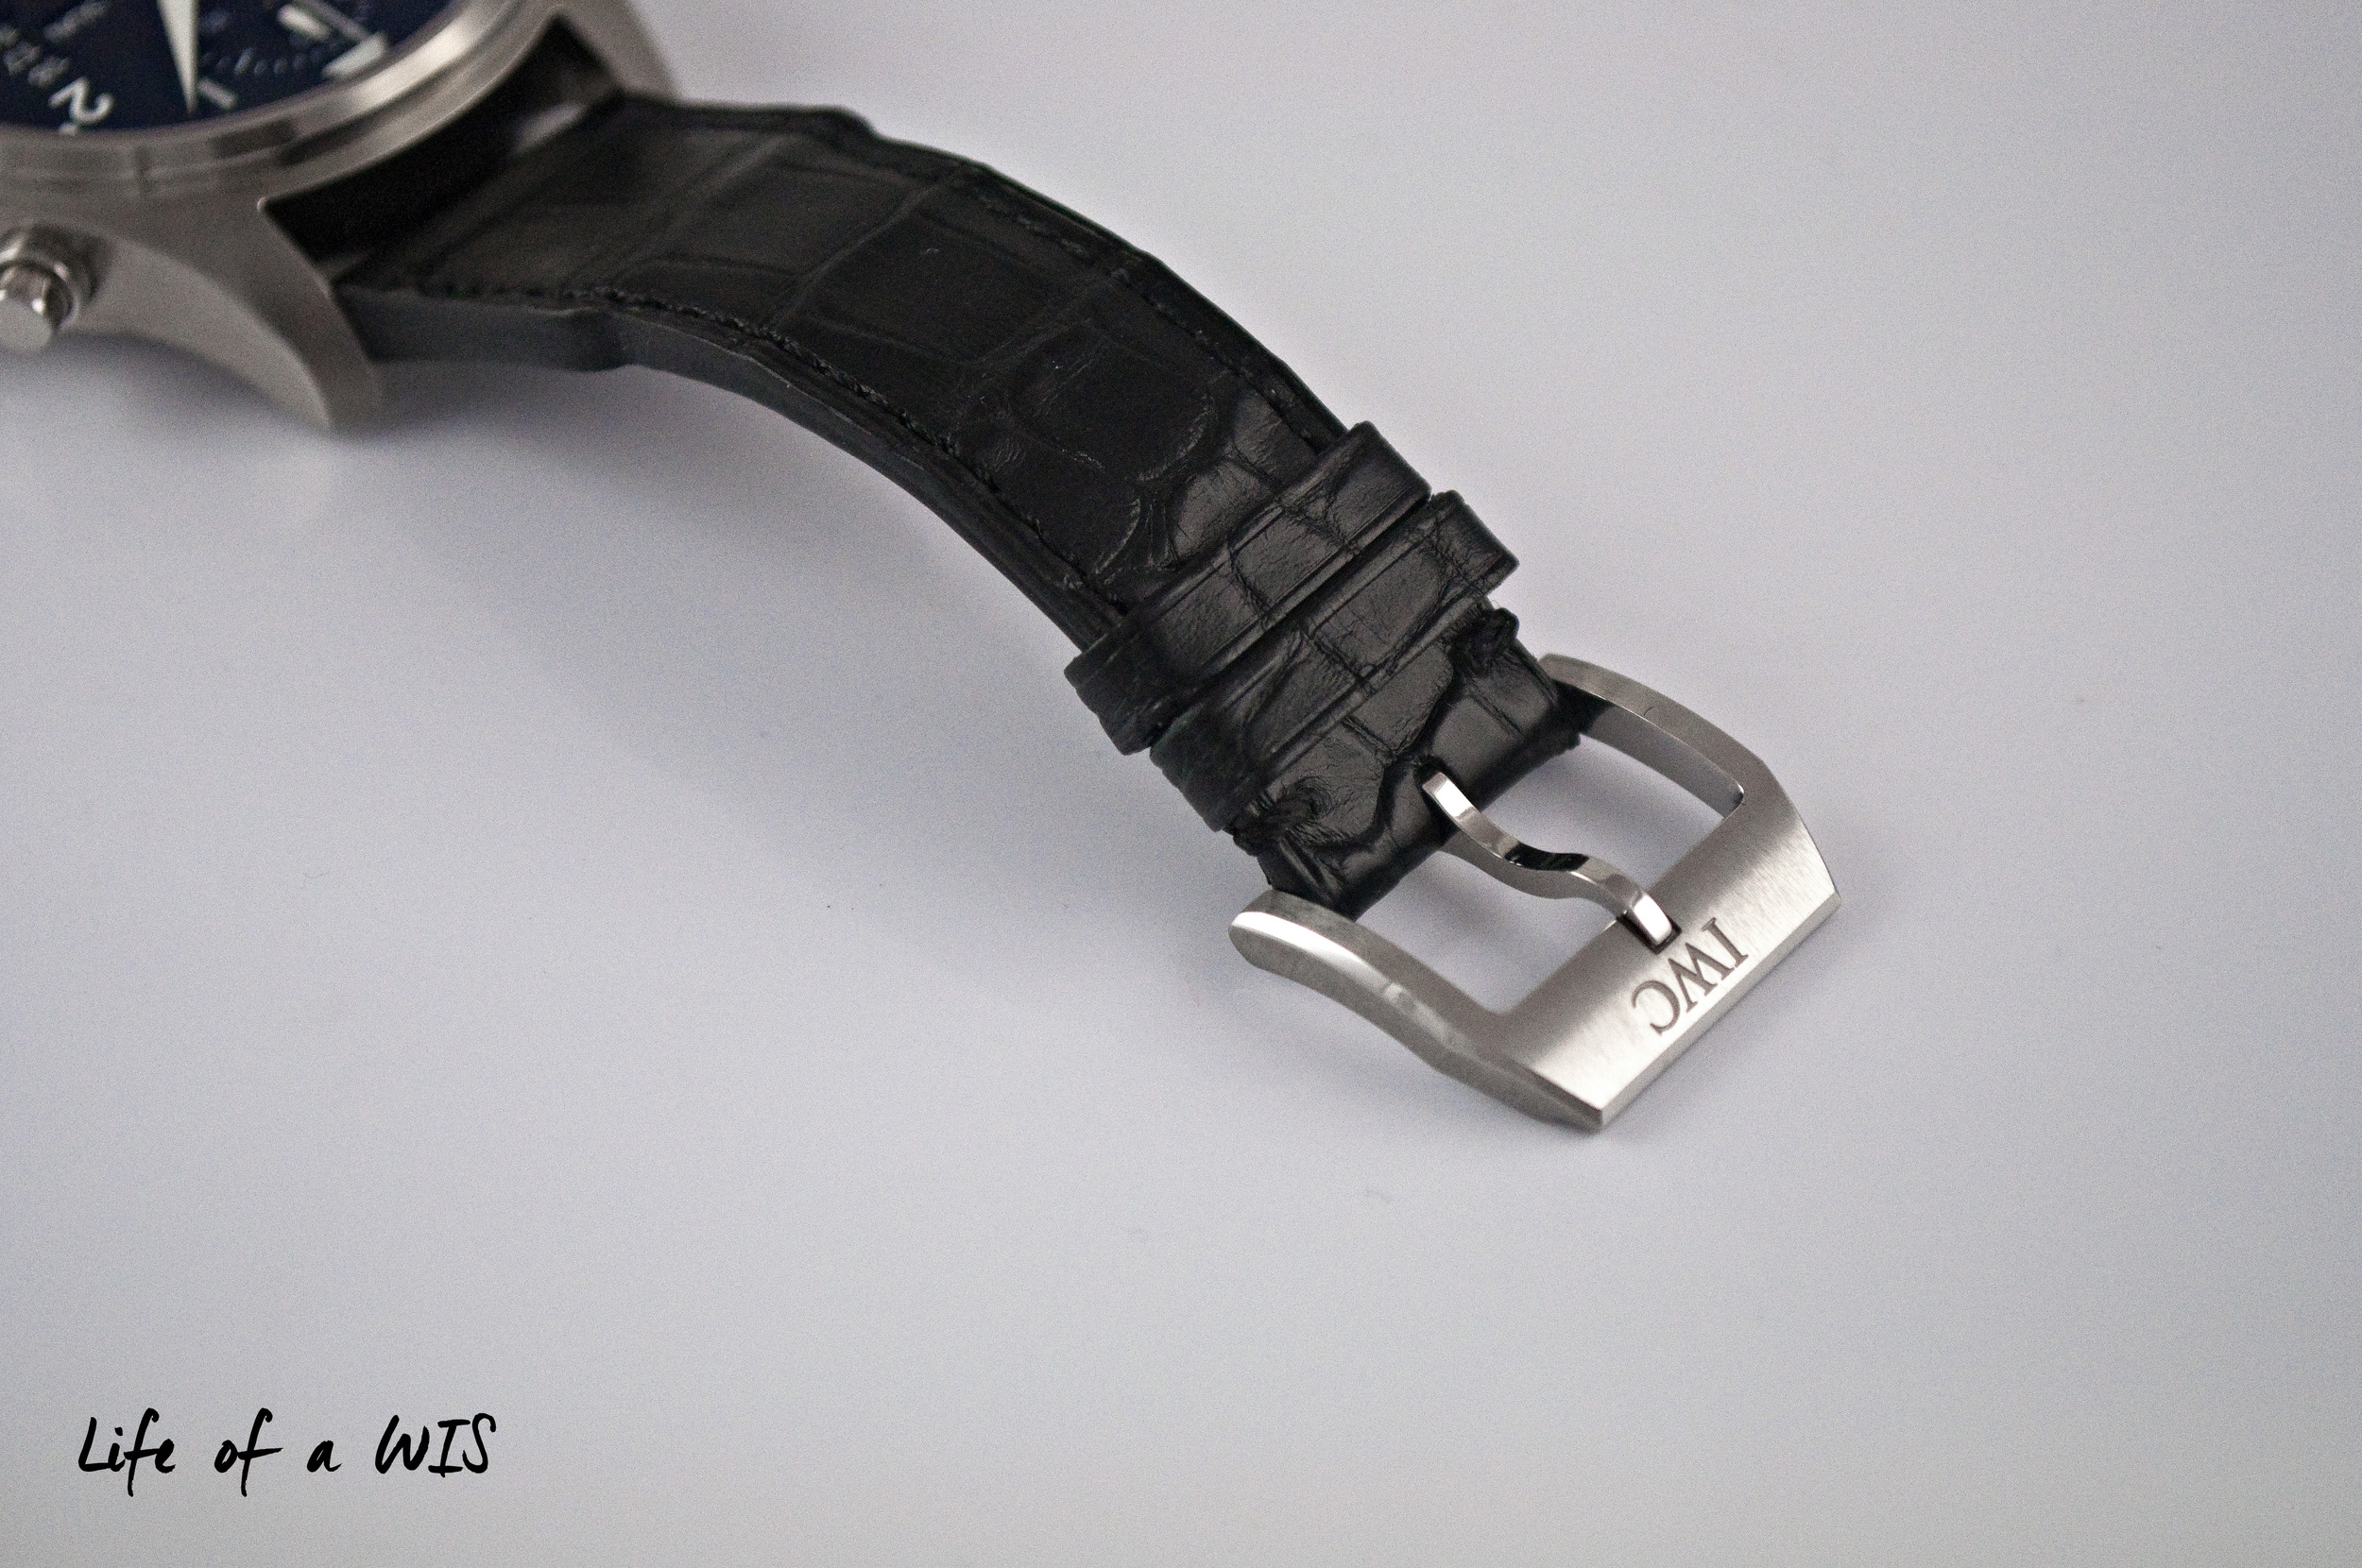 The sharp bottom edges of the tang buckle can dig into the wrist, causing discomfort.